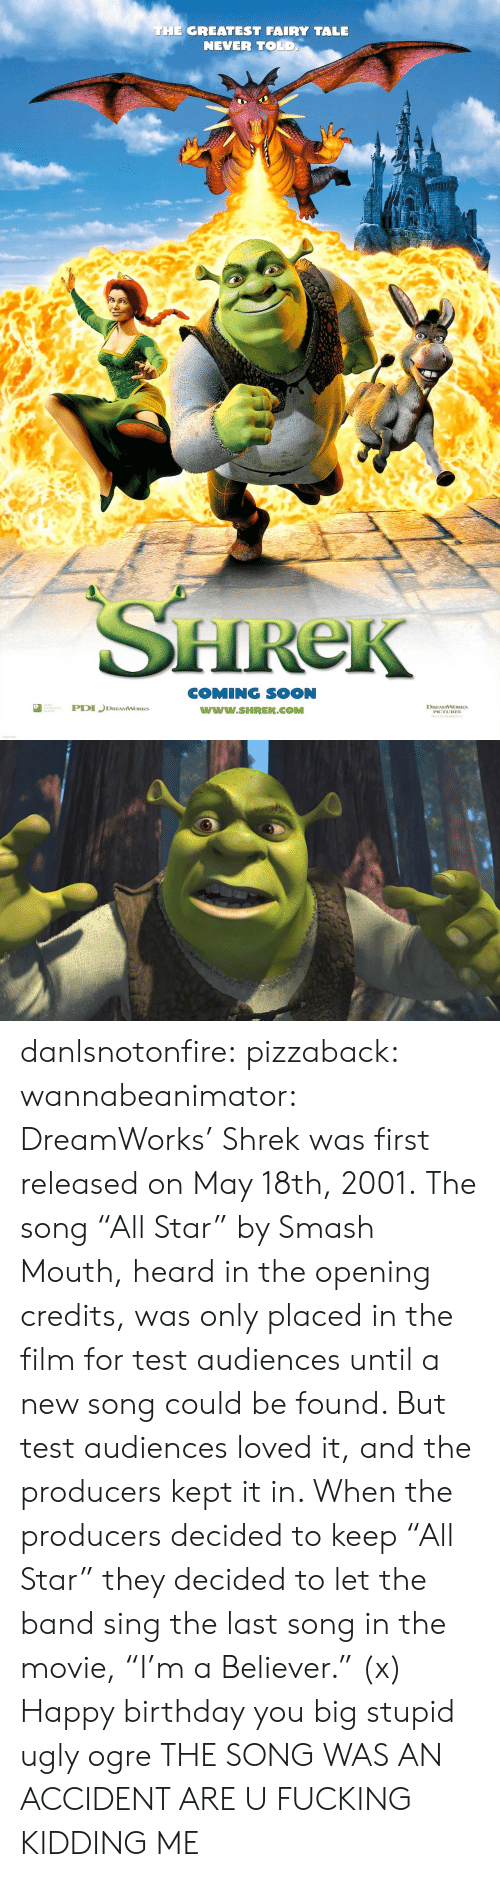 "Imdb: THE GREATEST FAIRY TALE  NEVER TOLD  HReK  COMING SOON  www.SHREK.COMM  ted  DREAMWORKS danlsnotonfire:  pizzaback:   wannabeanimator:   DreamWorks' Shrek was first released on May 18th, 2001. The song ""All Star"" by Smash Mouth, heard in the opening credits, was only placed in the film for test audiences until a new song could be found. But test audiences loved it, and the producers kept it in. When the producers decided to keep ""All Star"" they decided to let the band sing the last song in the movie, ""I'm a Believer."" (x)   Happy birthday you big stupid ugly ogre   THE SONG WAS AN ACCIDENT ARE U FUCKING KIDDING ME"